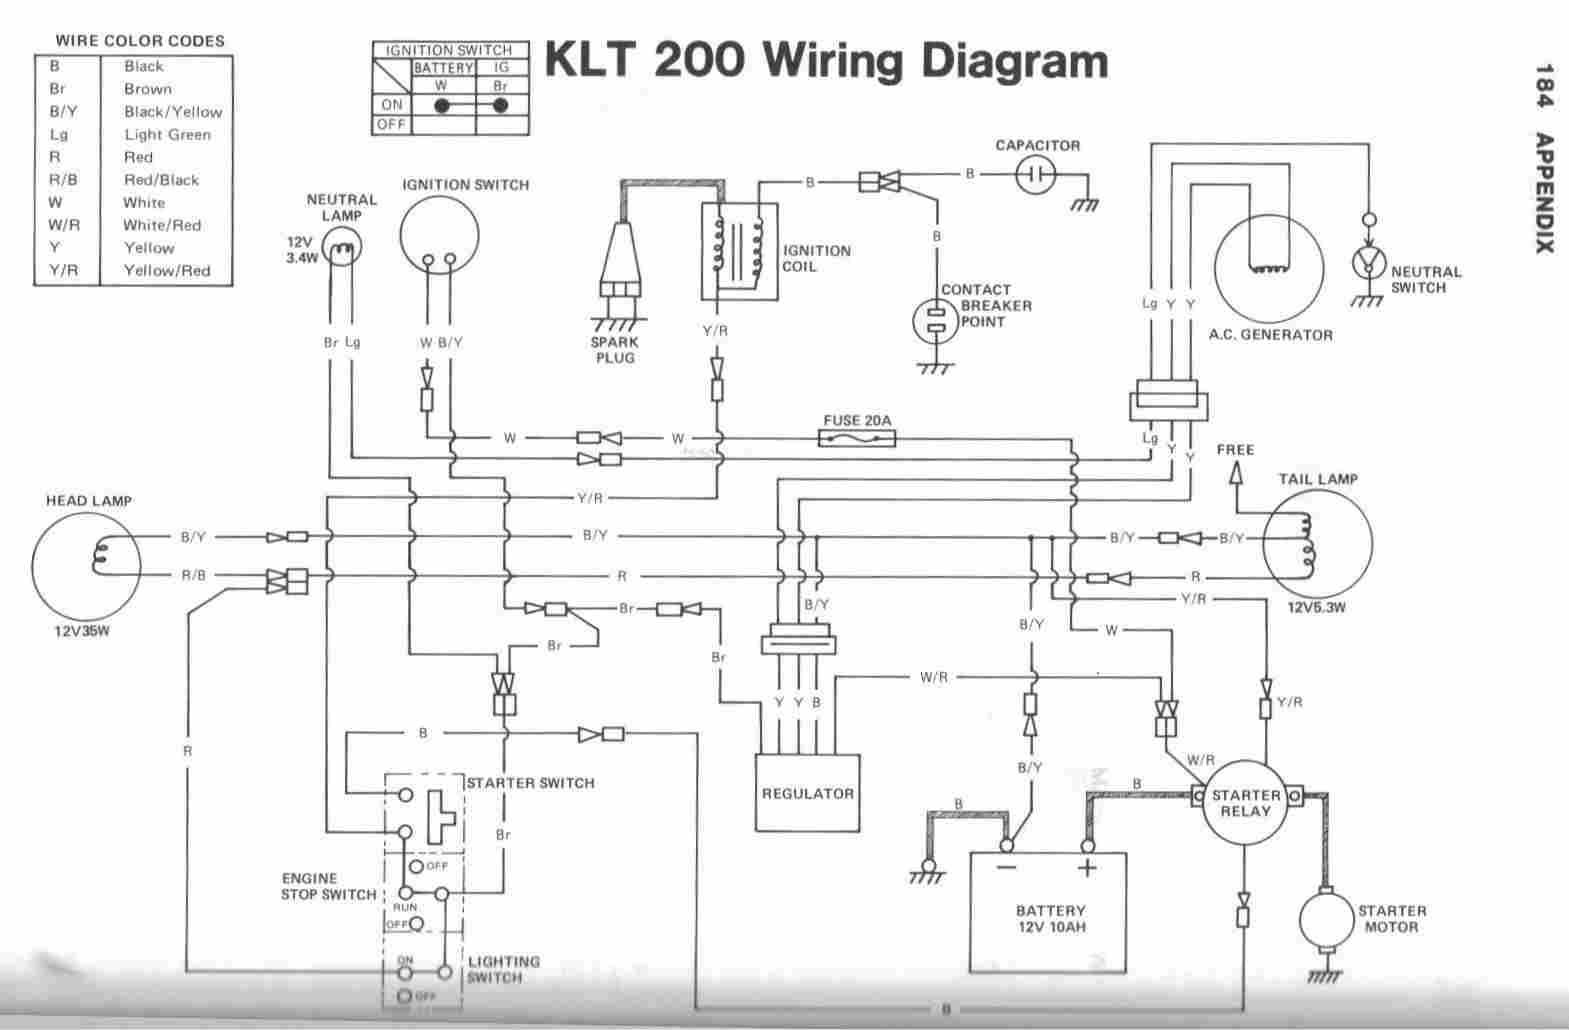 2869034594ce054a636782e5c44b61b4 power wiring diagram rain bird controller wiring diagram \u2022 wiring auto gate wiring diagram pdf at eliteediting.co